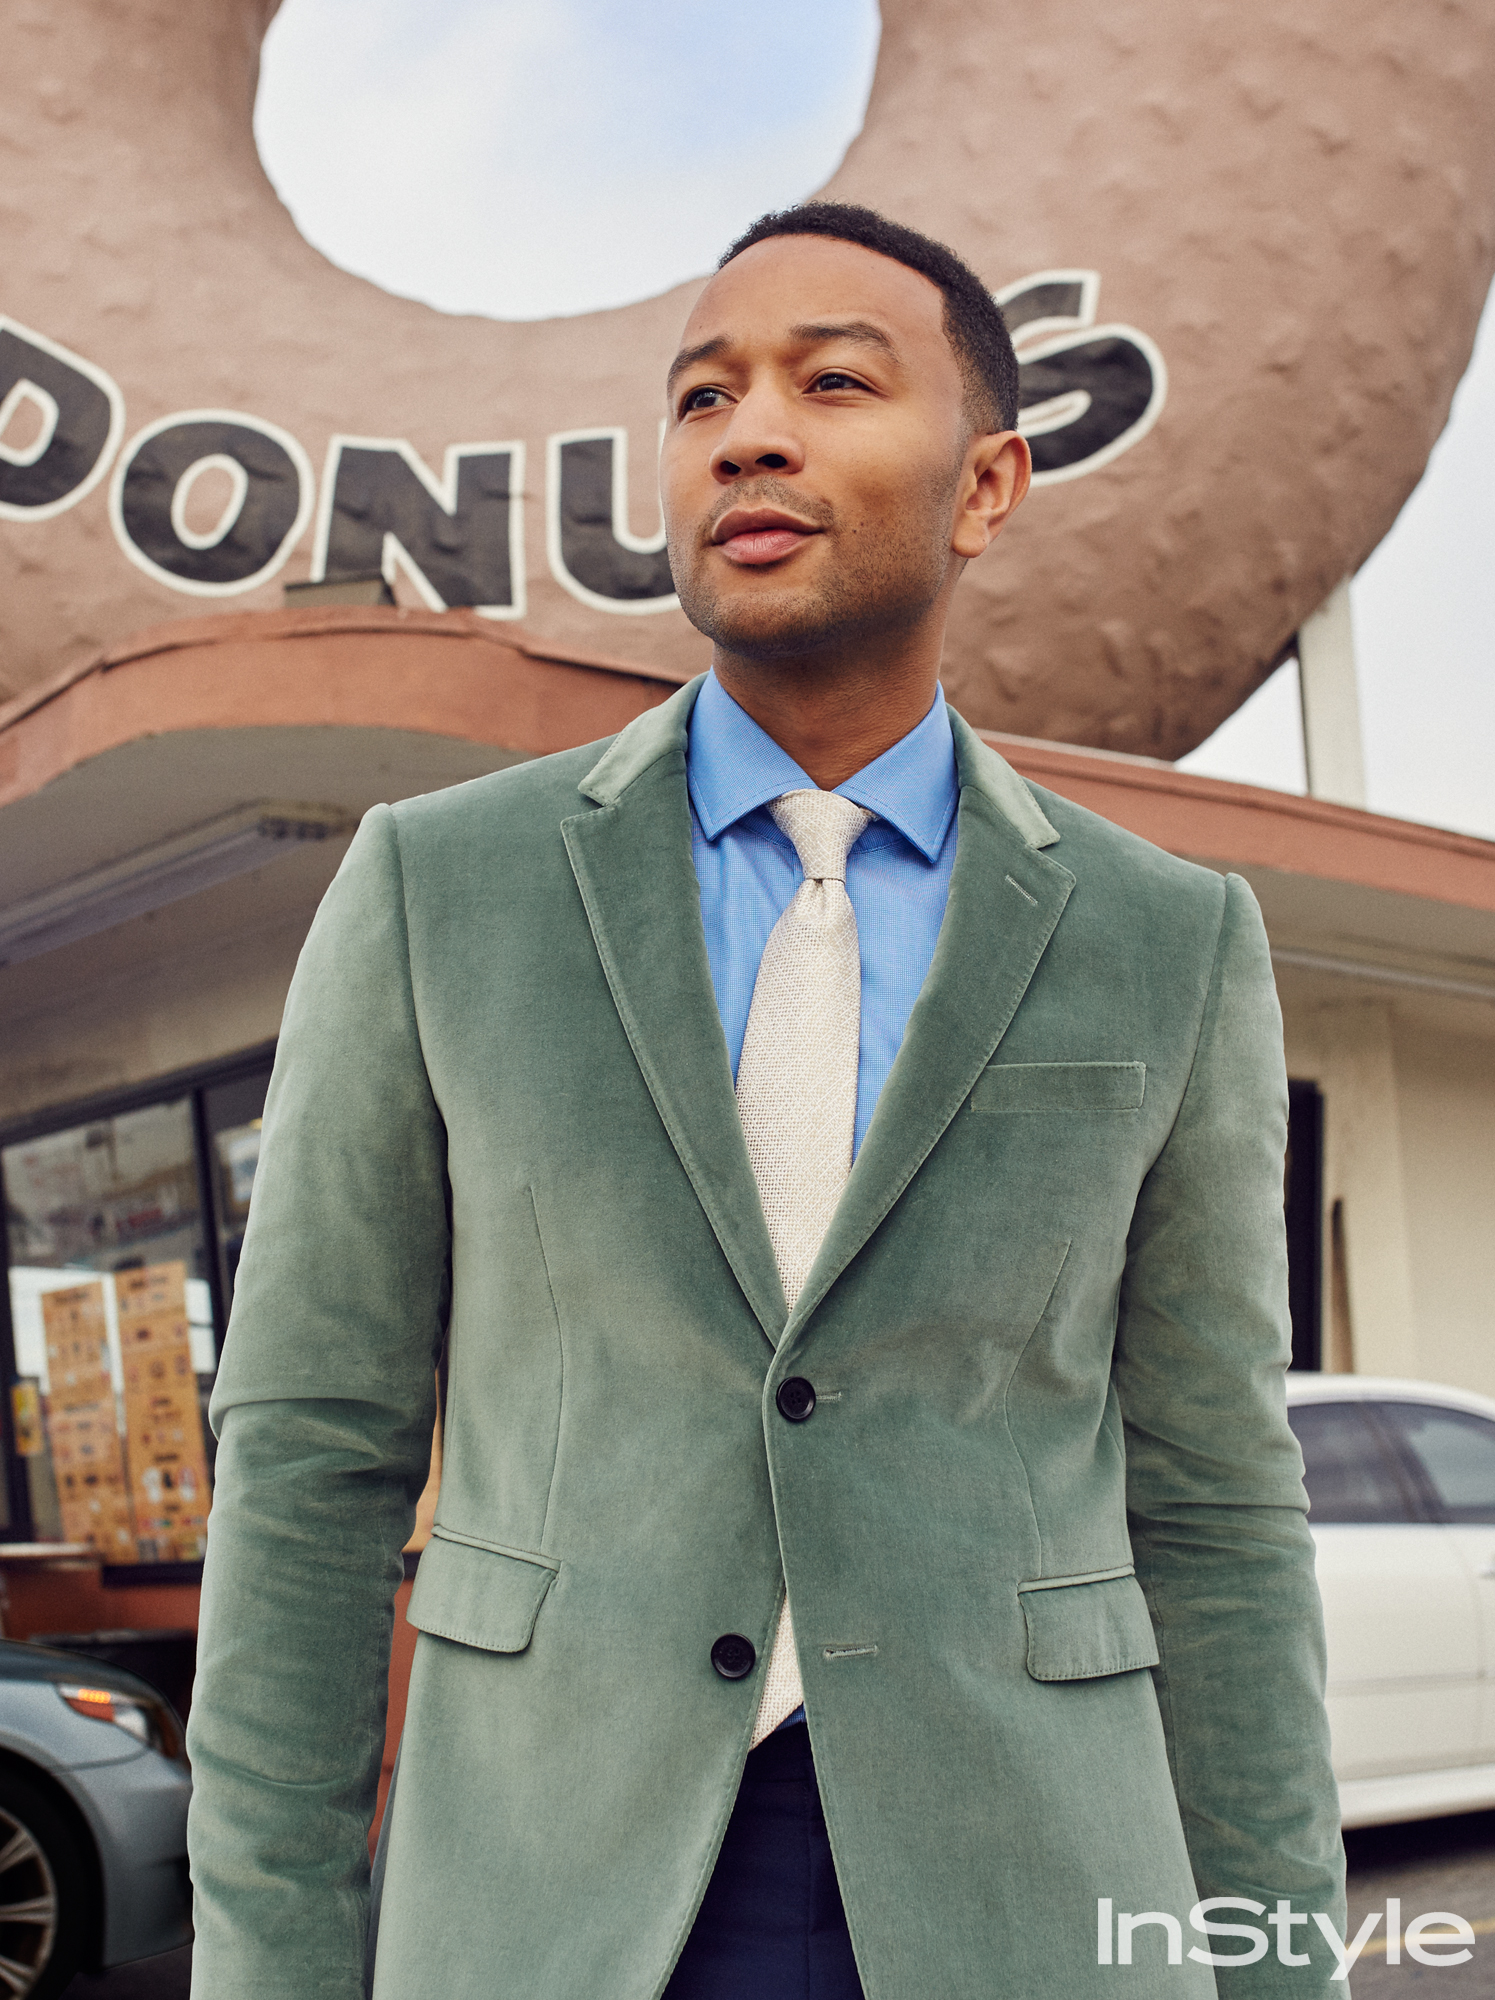 John Legend - InStyle February 2017 - SLIDE 3